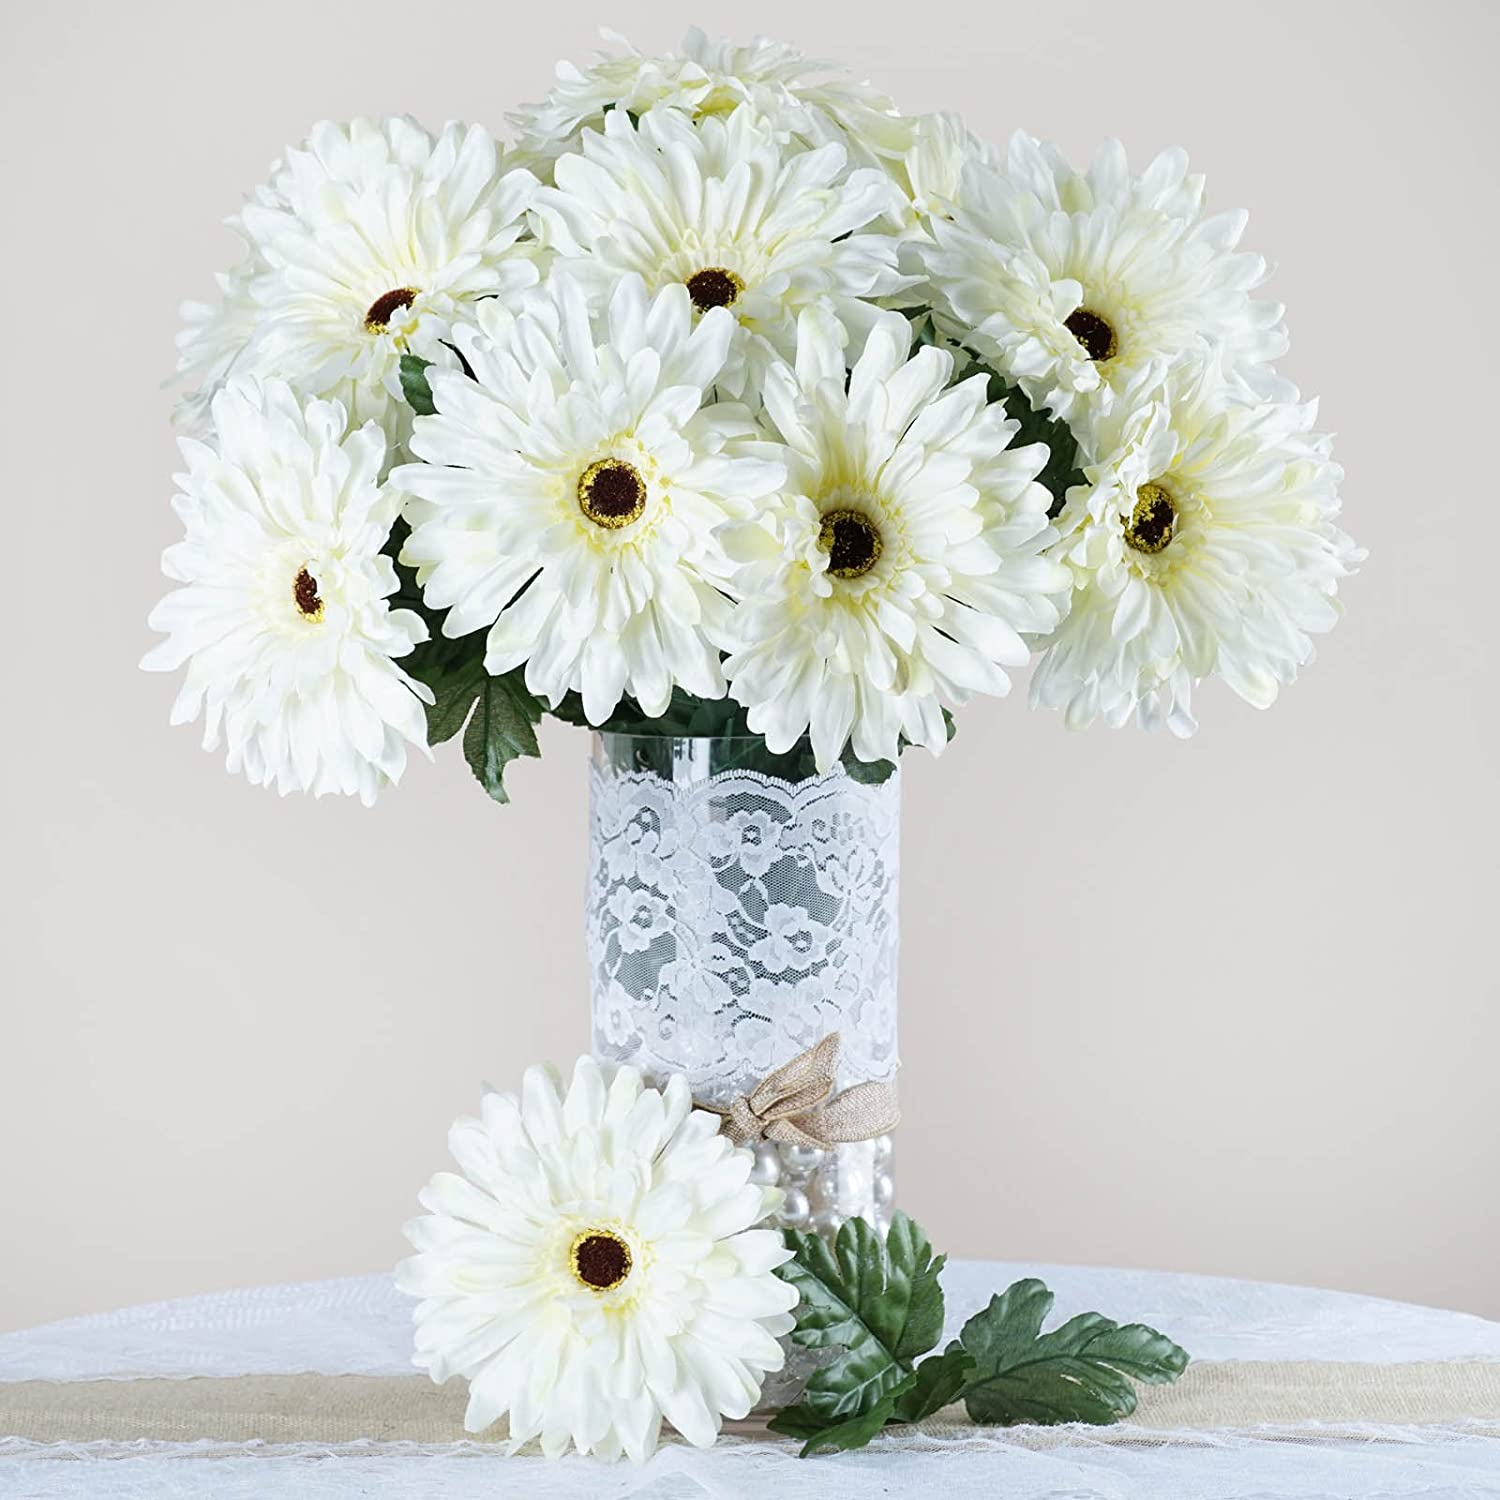 Amazon balsacircle 28 cream silk gerbera daisy flowers 4 amazon balsacircle 28 cream silk gerbera daisy flowers 4 bushes artificial flowers wedding party centerpieces arrangements bouquets home kitchen izmirmasajfo